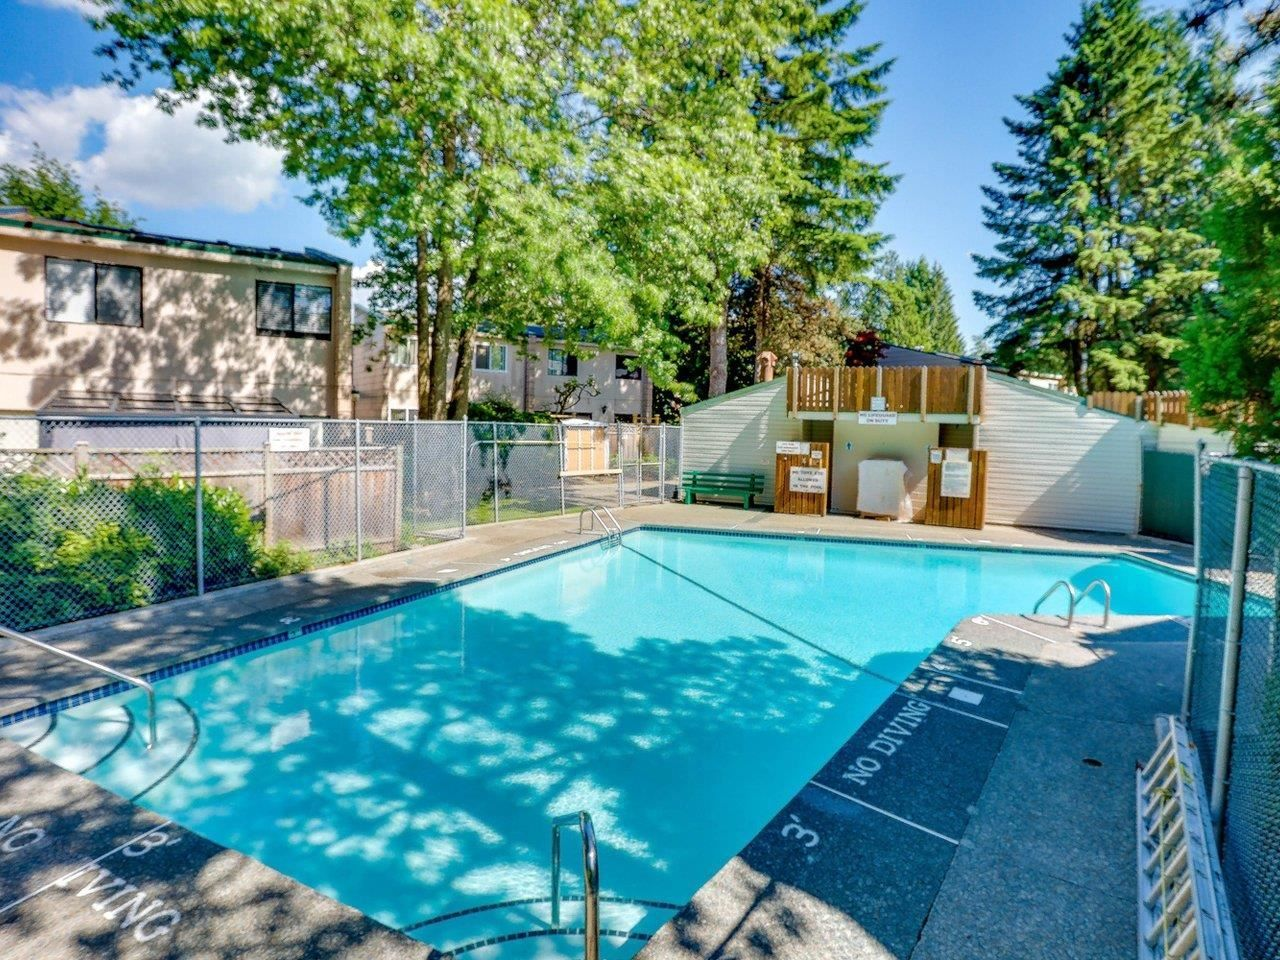 """Photo 20: Photos: 21 10585 153 Street in Surrey: Guildford Townhouse for sale in """"Guildford Mews"""" (North Surrey)  : MLS®# R2593242"""